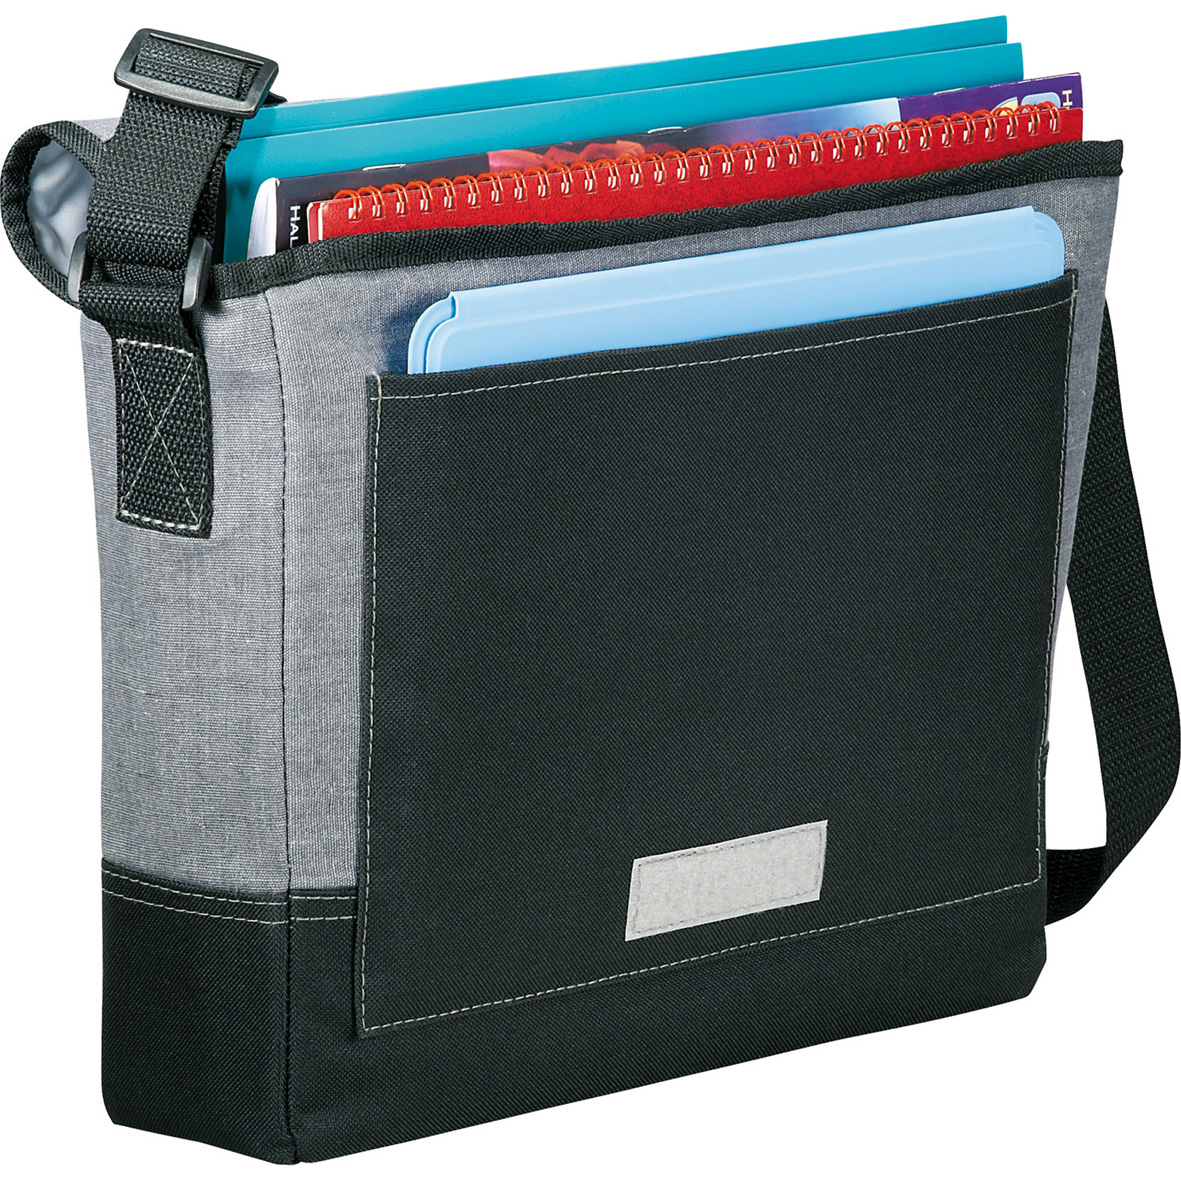 Faded Tablet Messenger Bag